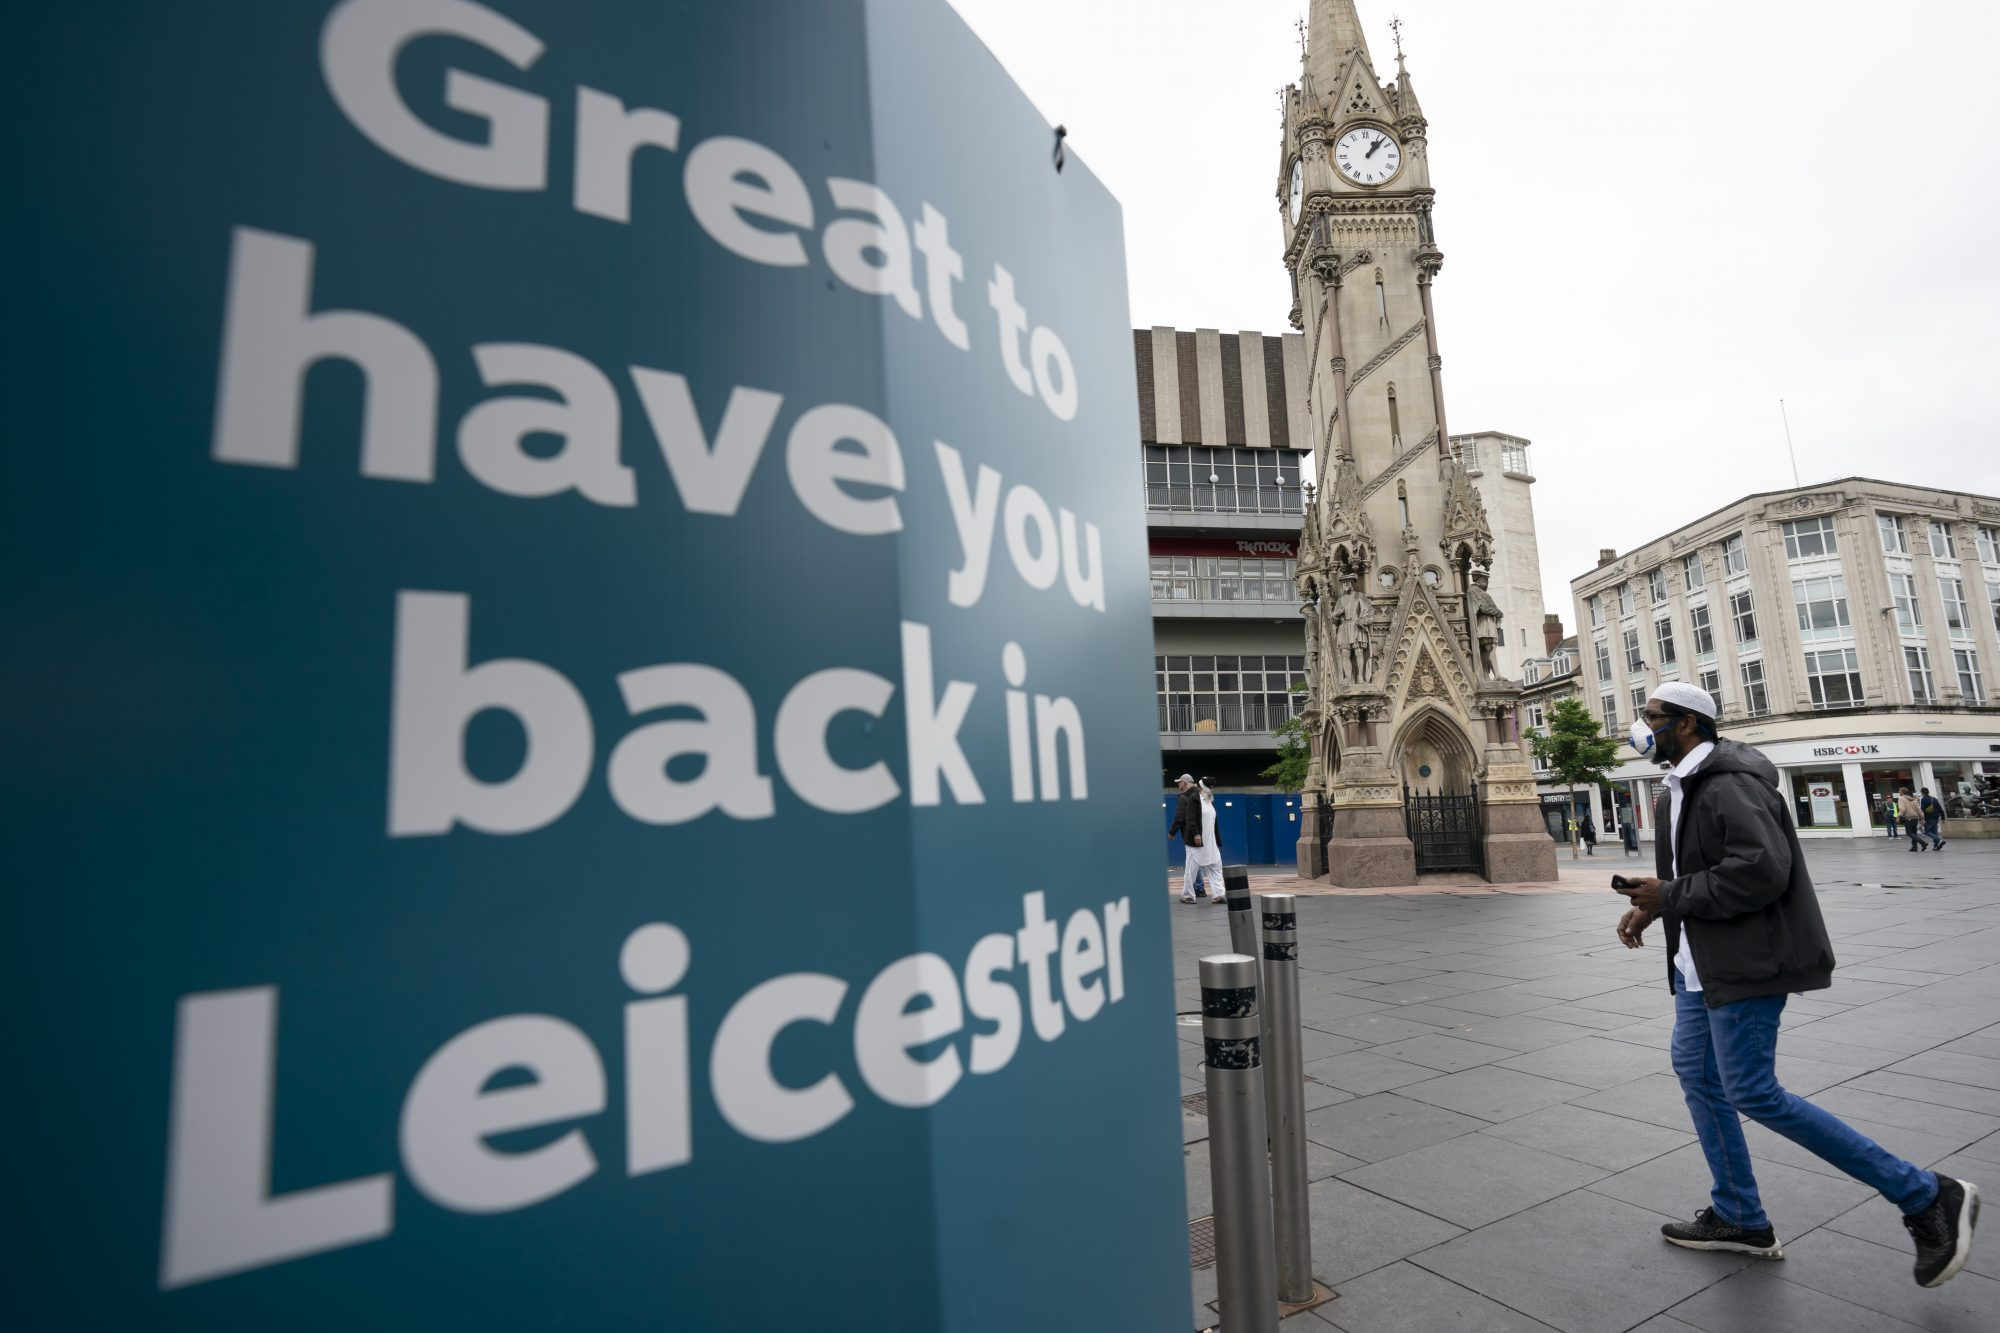 Labour accuses Johnson of being too slow to respond to Leicester Covid outbreak - channel 4